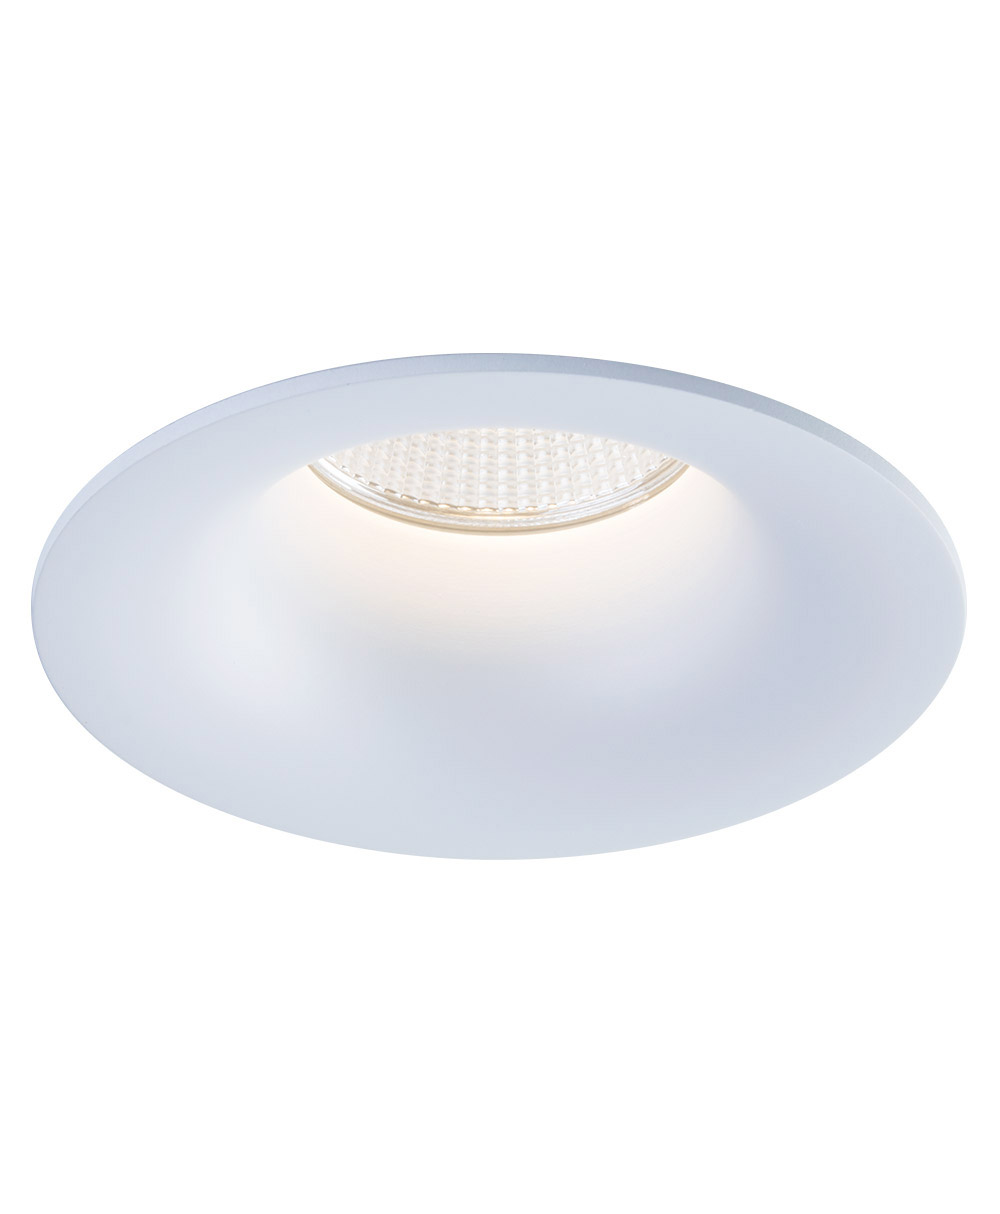 SIGMA 2 Round Reflector LED Fixture